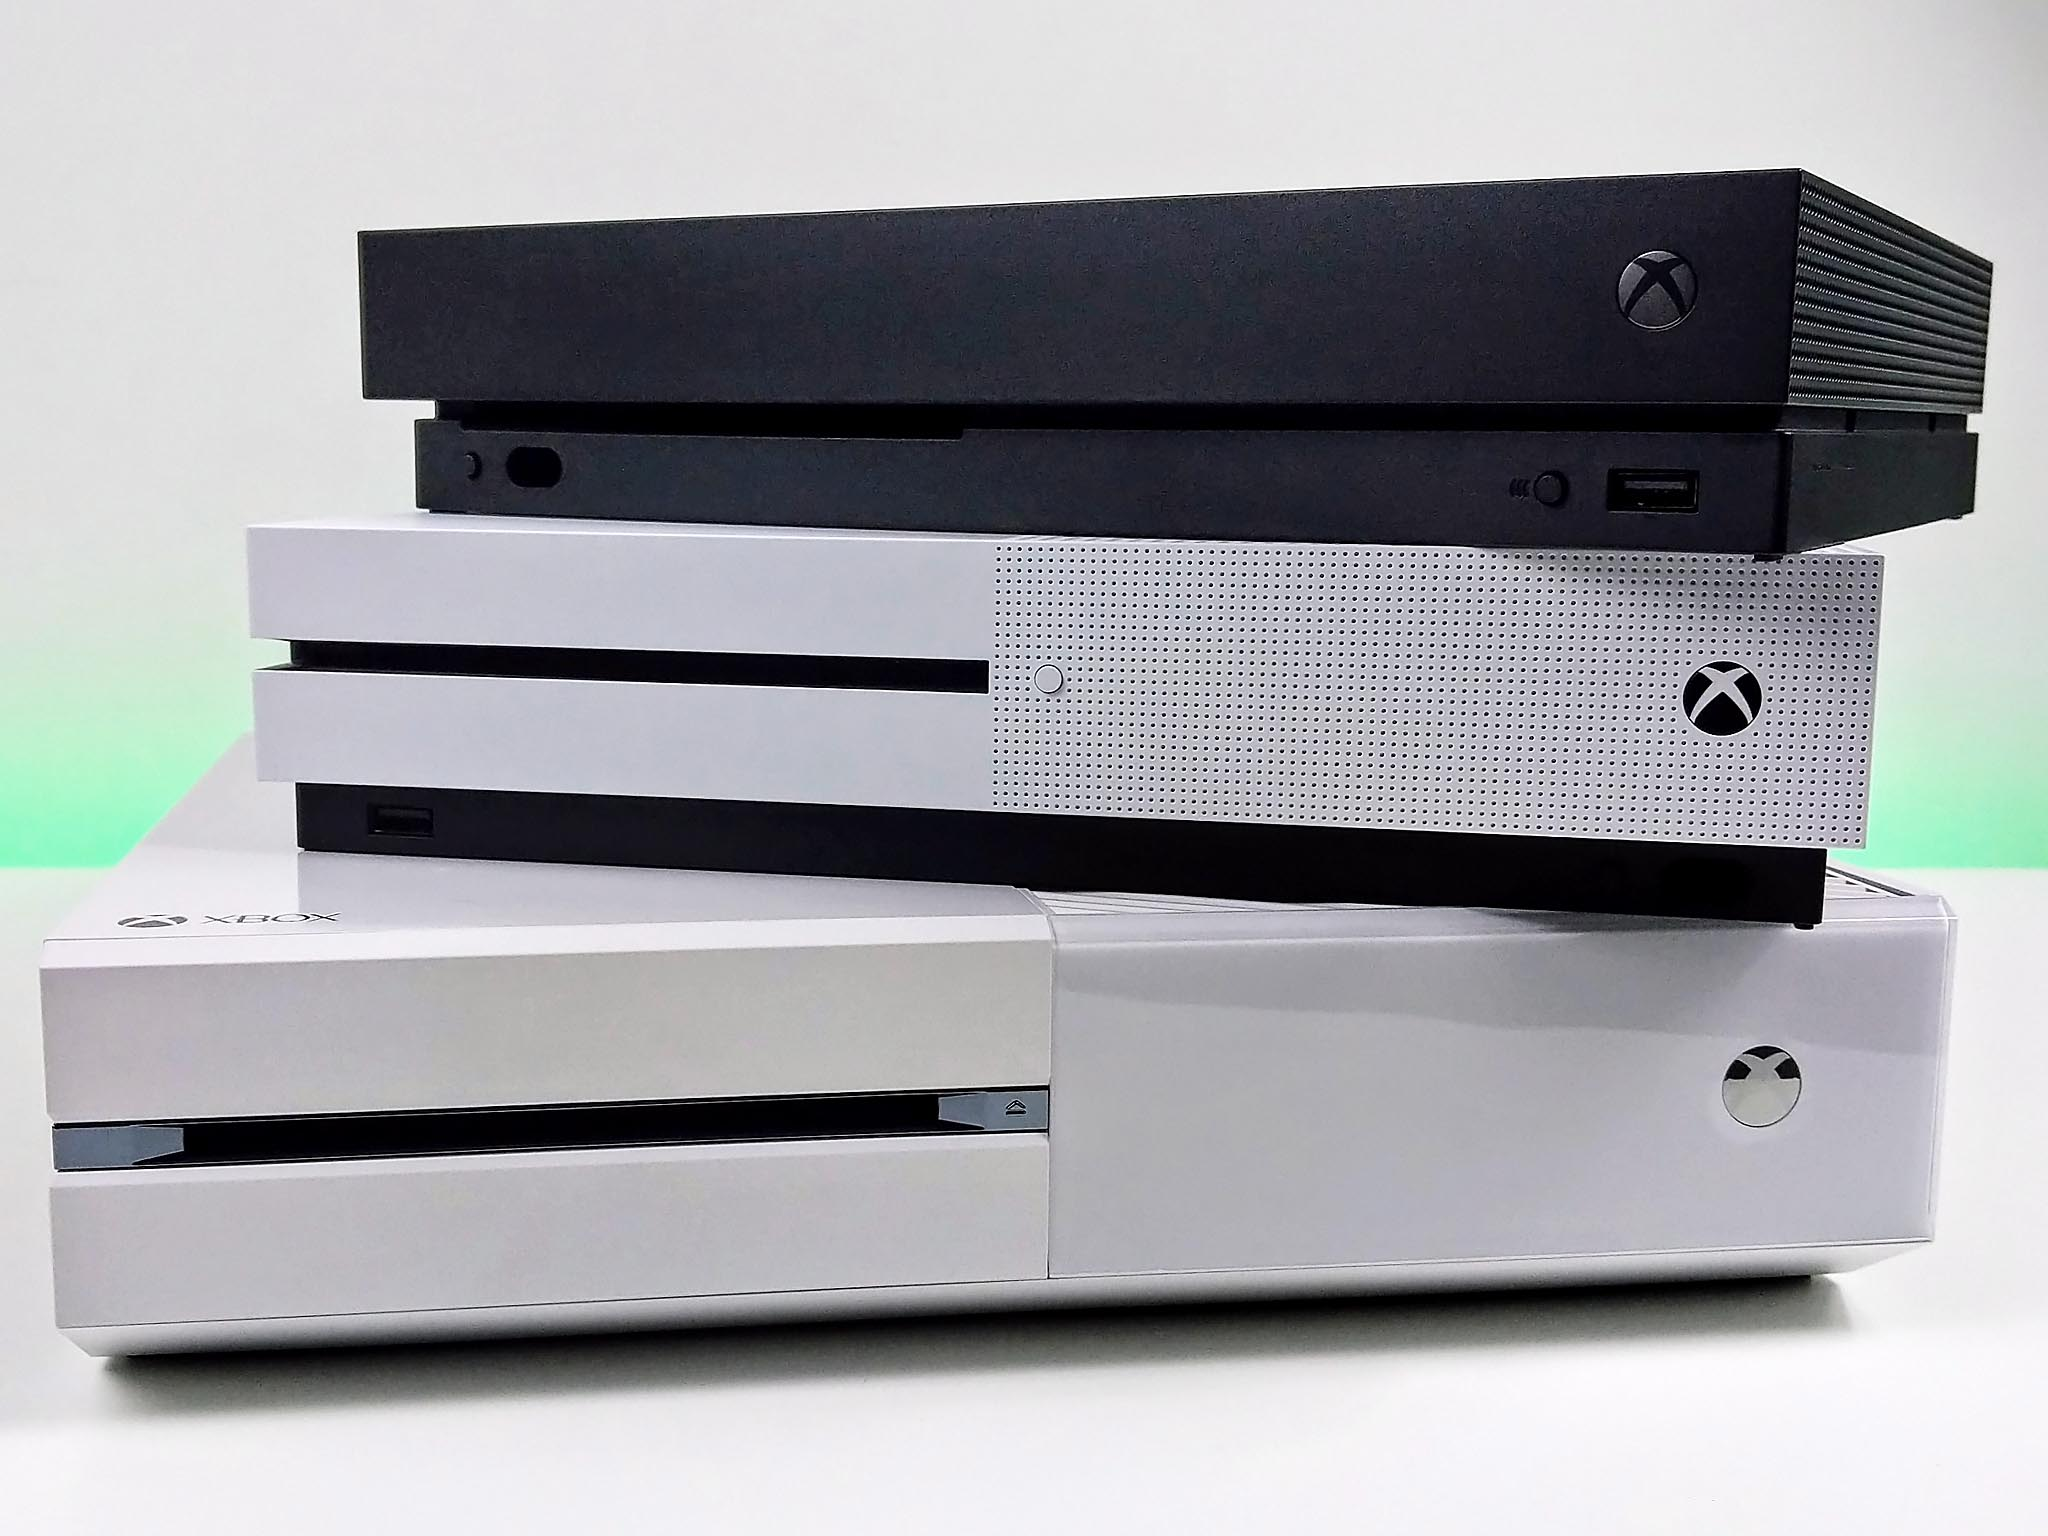 small resolution of microsoft has sold three revisions of the xbox one over its four years on the market each major revision of the console has delivered various visual